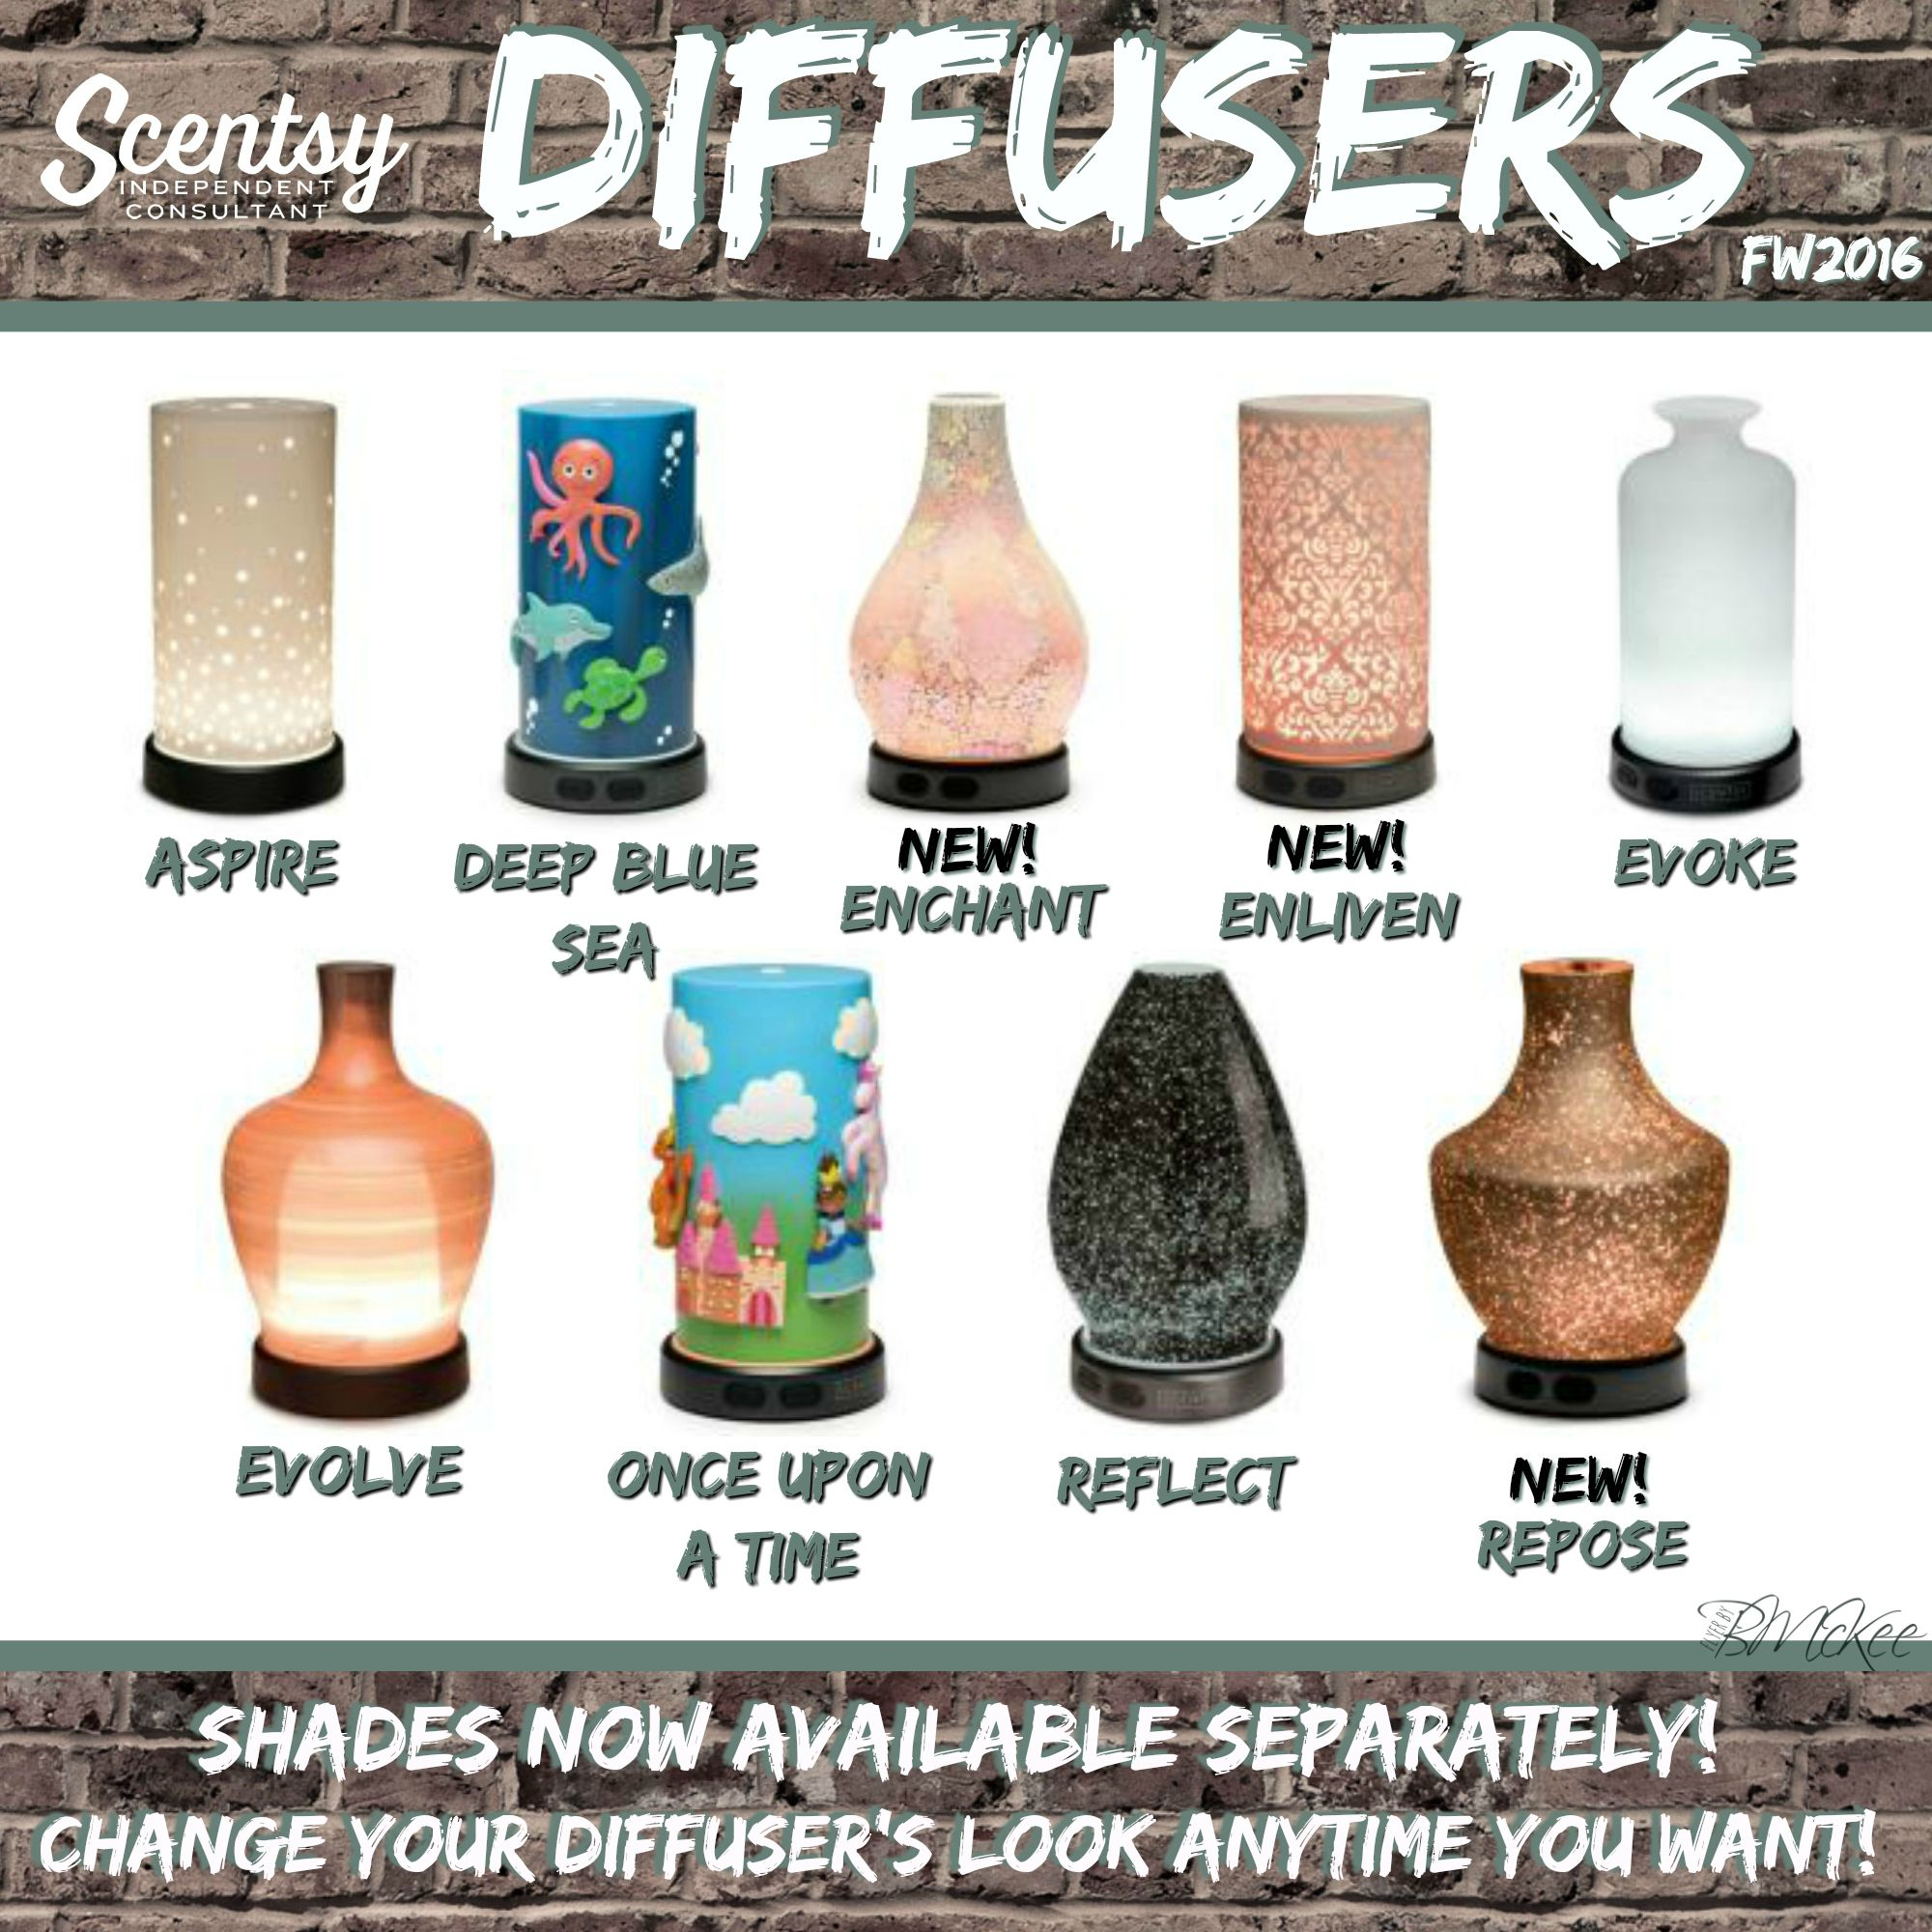 Scentsy Diffusers Fall Winter 2016 Flyer Created By Brittany